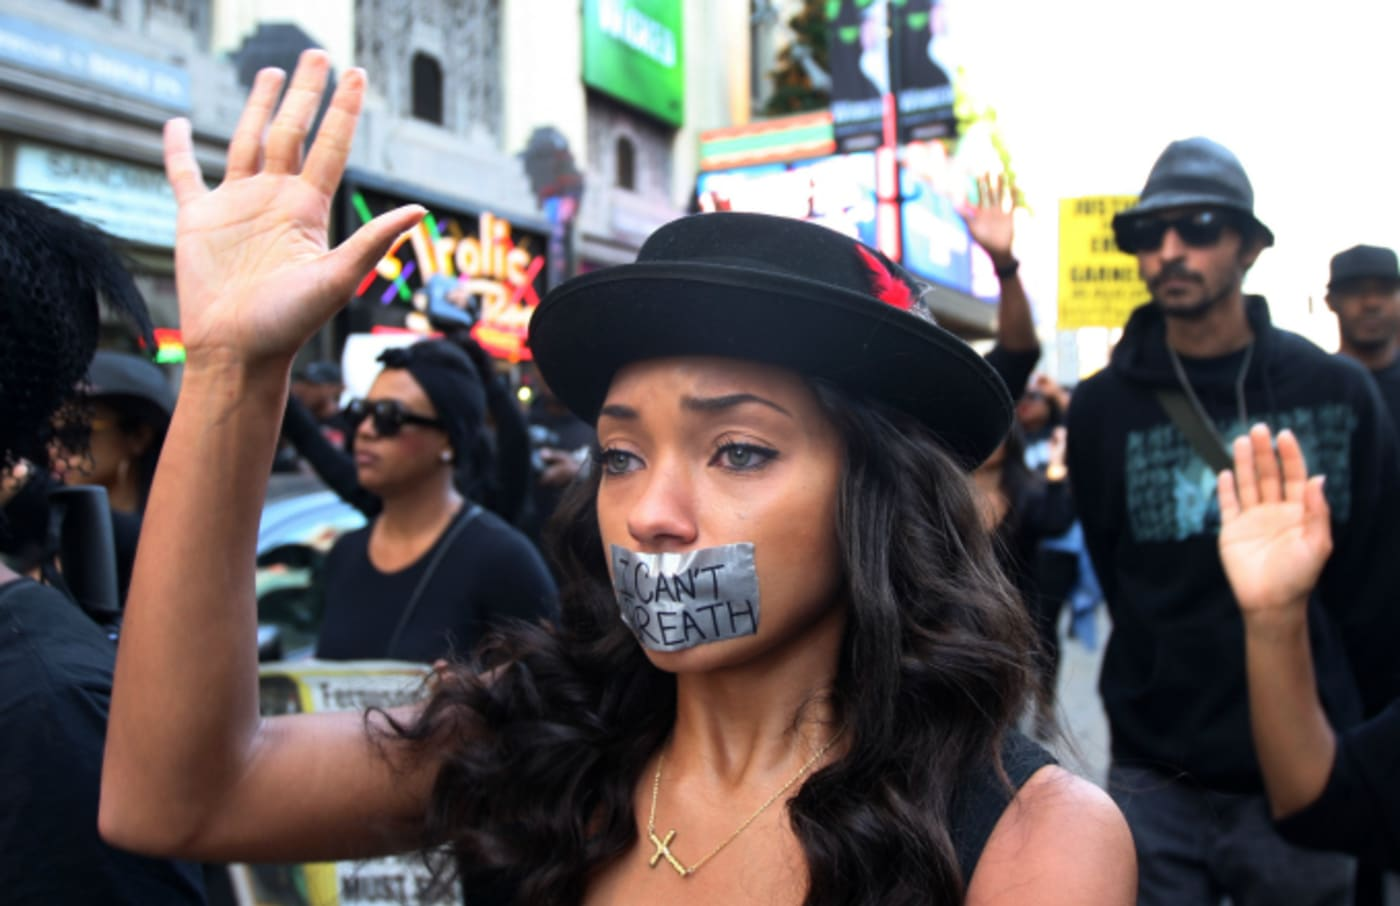 People march on Hollywood Boulevard in protest